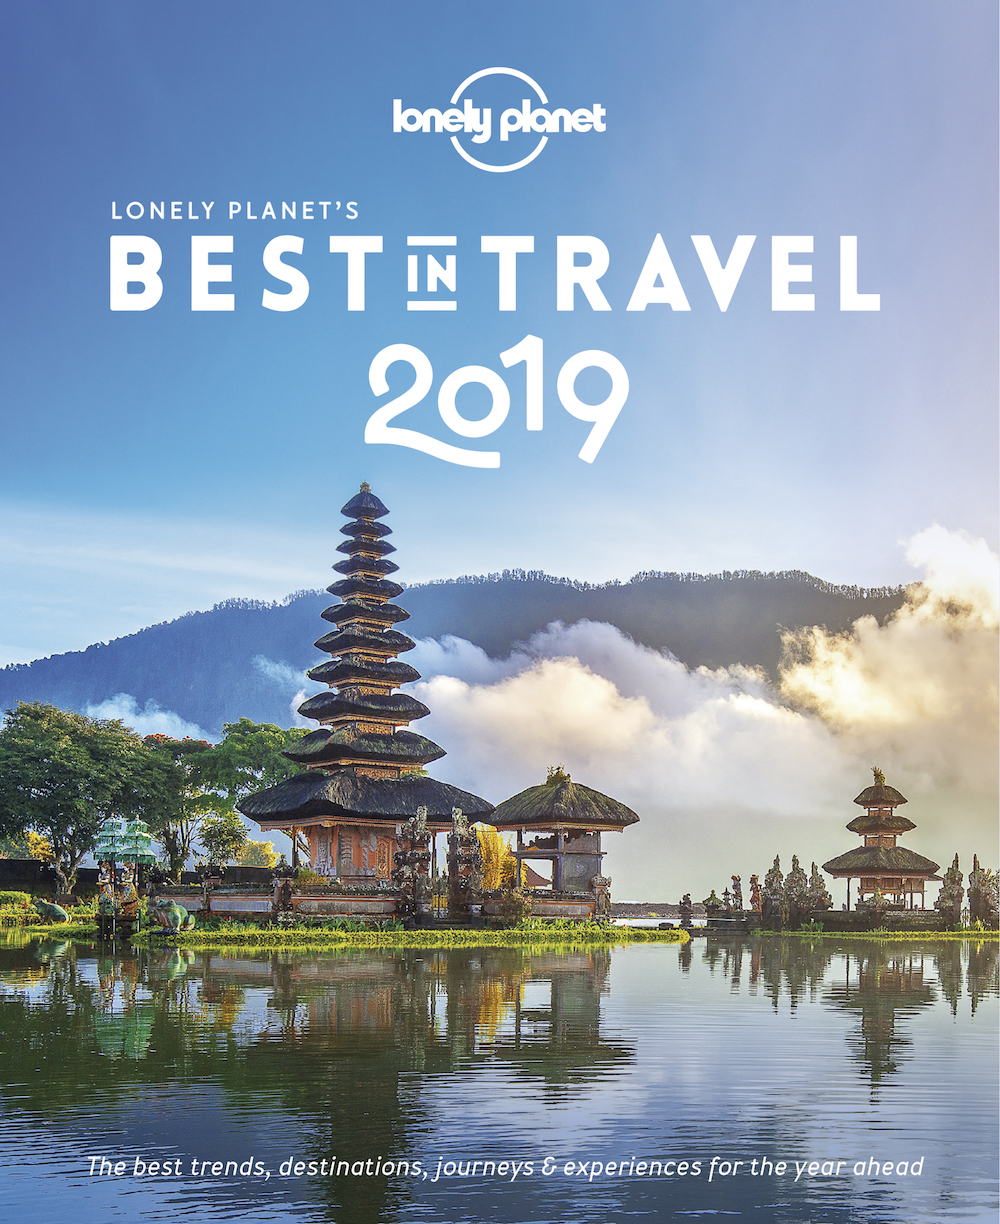 2019 Travel Trailers: Malaysia's Taman Tugu, Monopoly Mansion Among Lonely